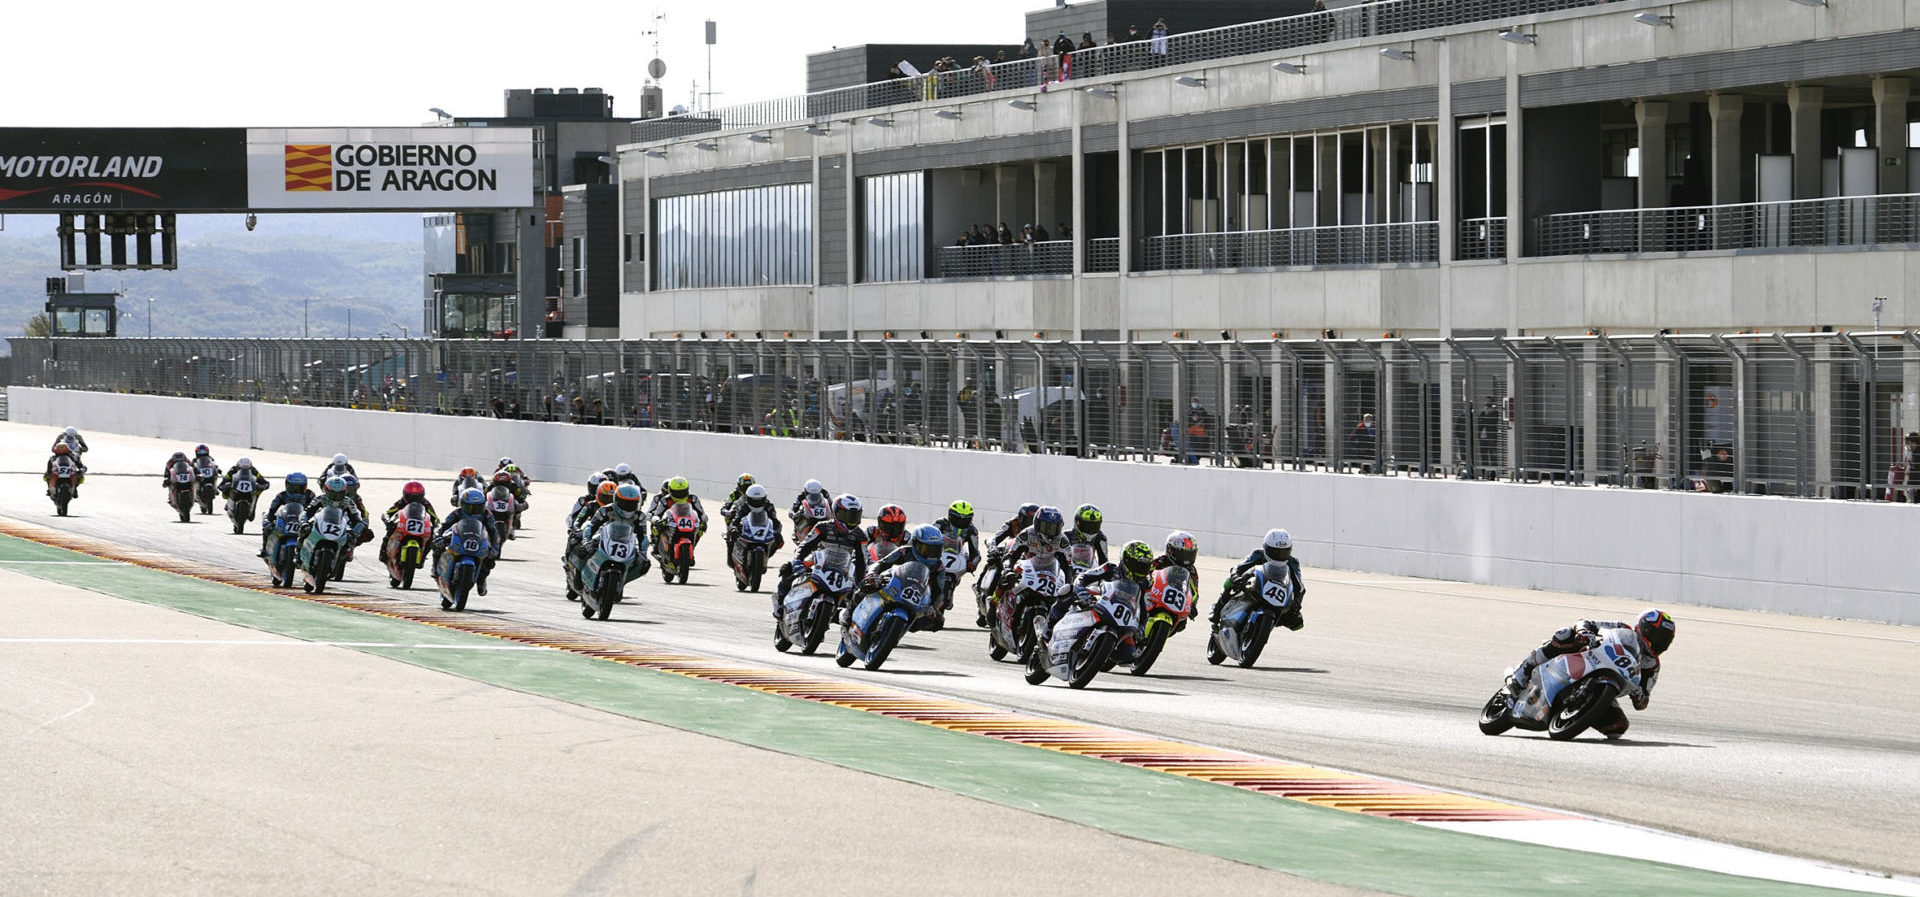 The start of a European Talent Cup race at Motorland Aragon. Photo courtesy Repsol CEV Press Office.